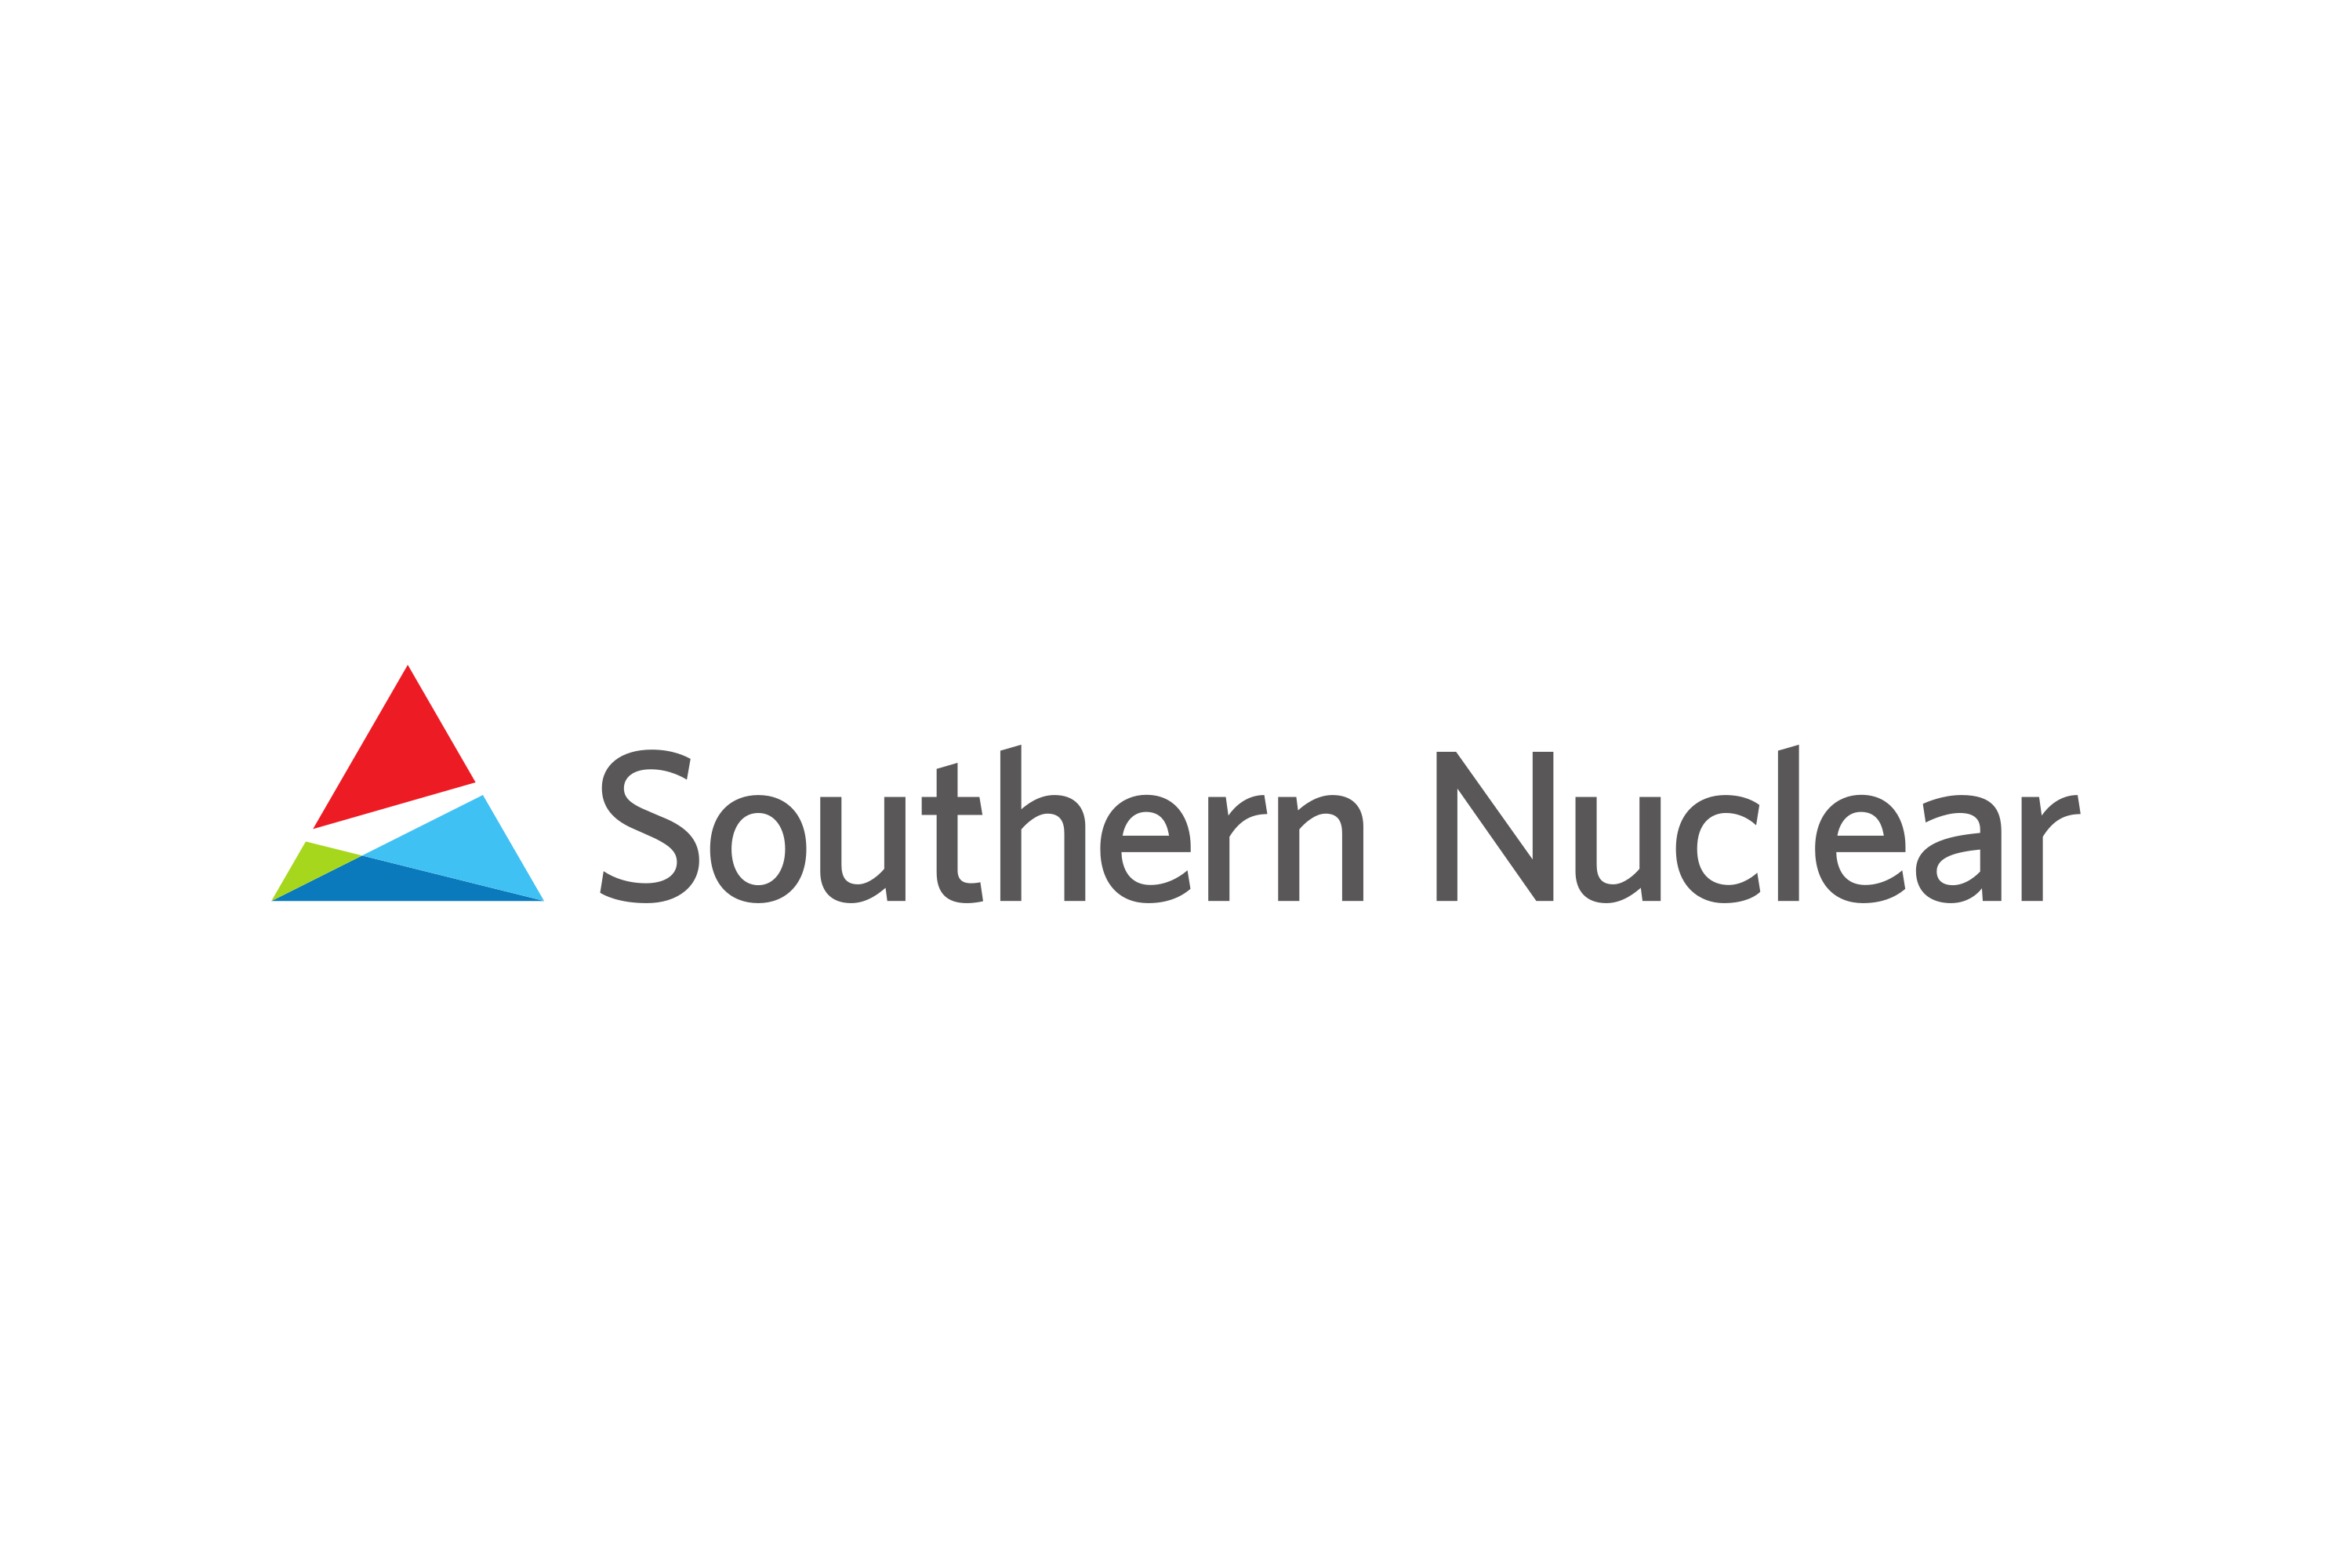 Southern Nuclear Logo.wine